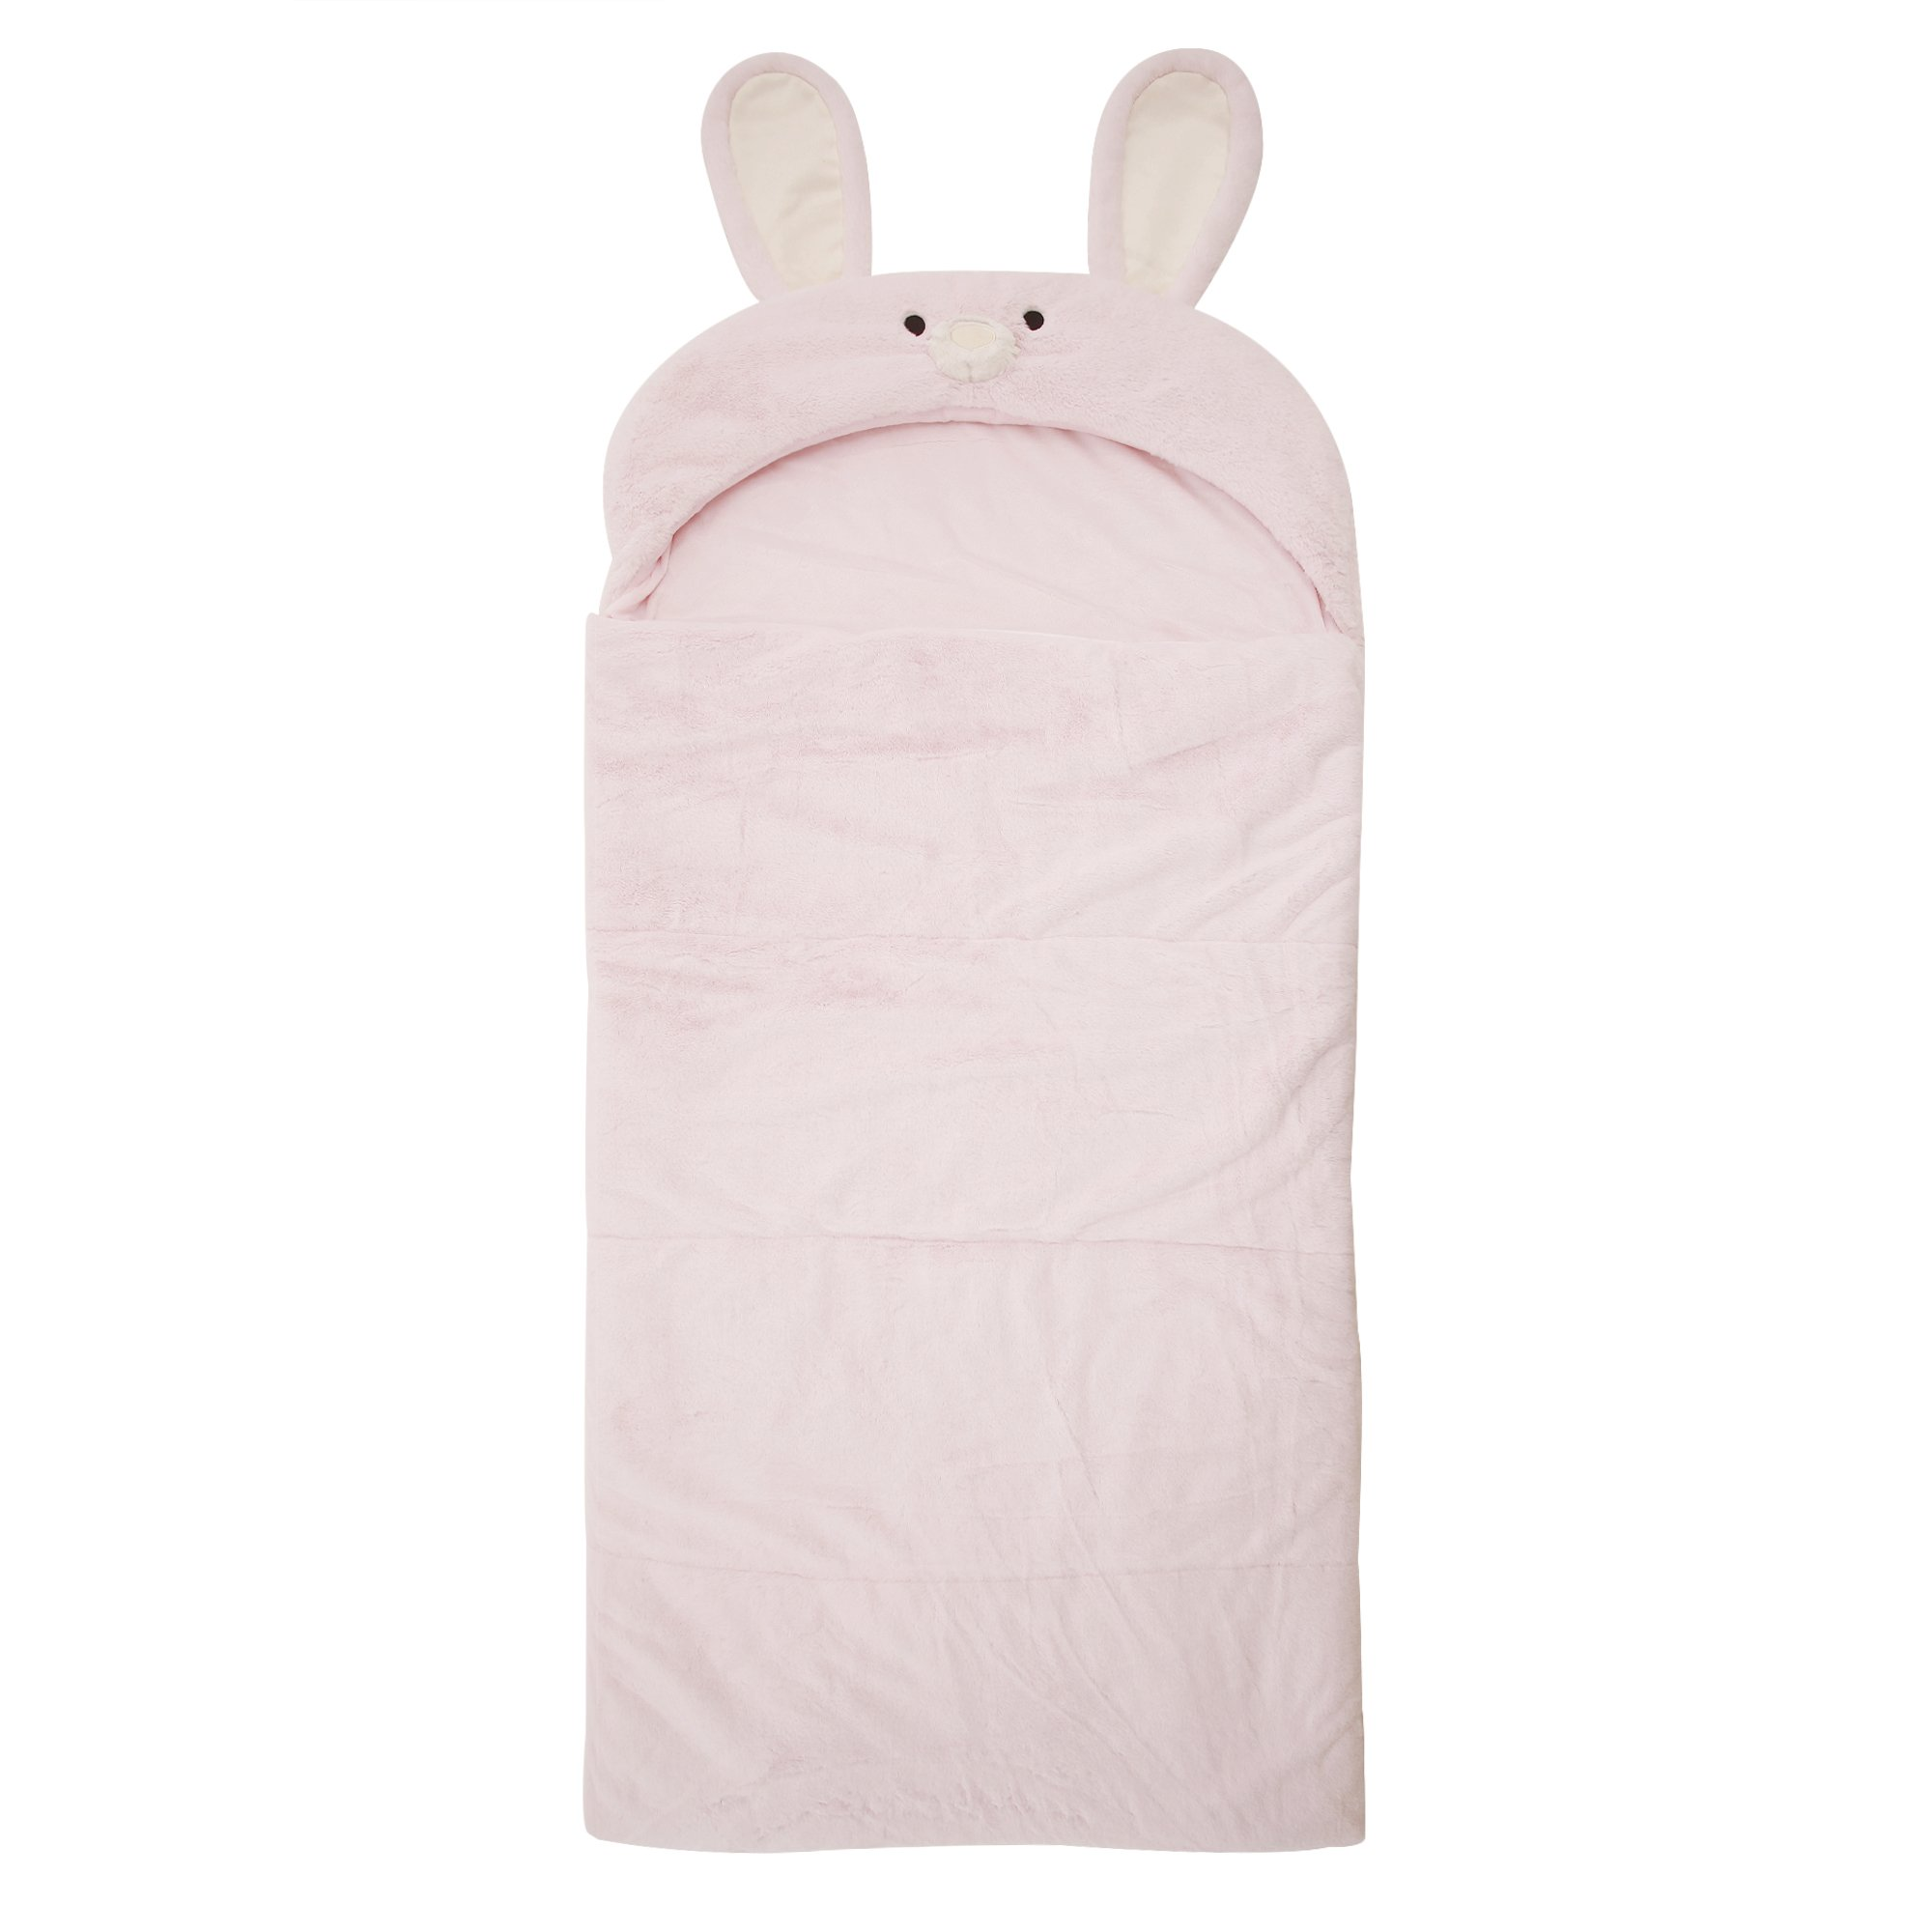 55c309d56c Get Quotations · Best Home Fashion Plush Faux Fur Hooded Rabbit Animal  Sleeping Bag - Pink - 27